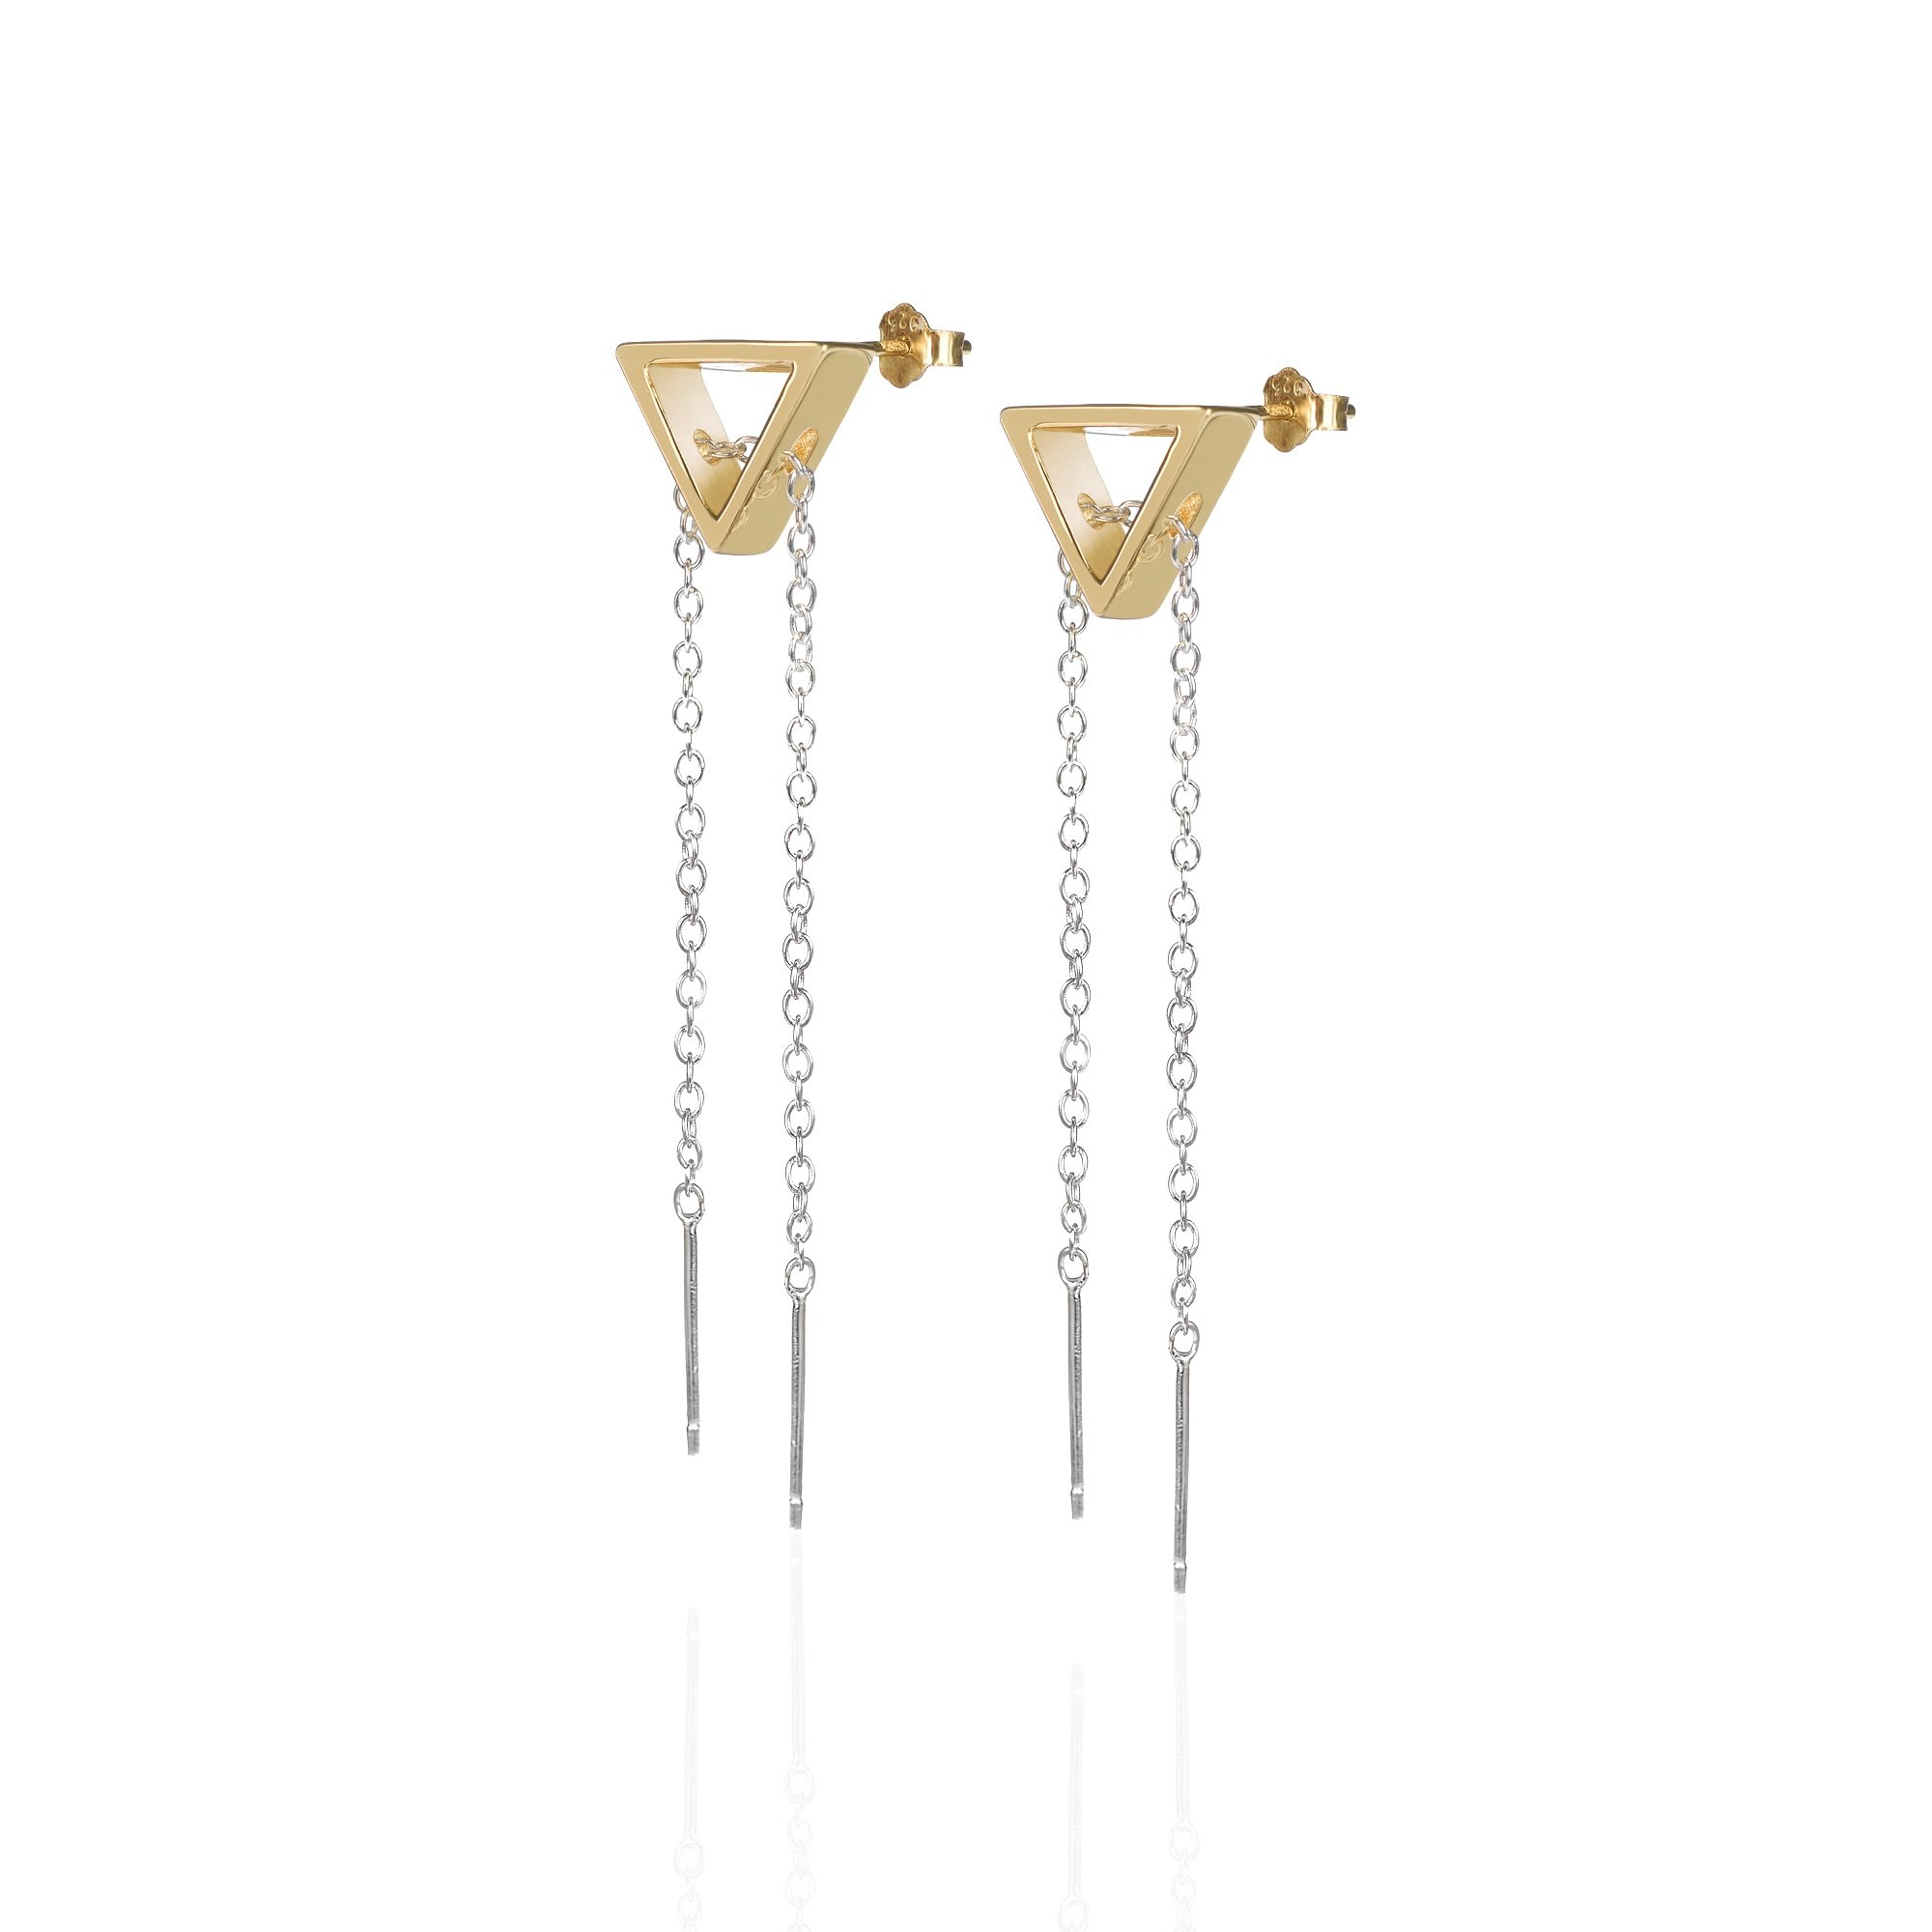 Journey Earrings by Sally Lane Jewellery on curated-crowd.com